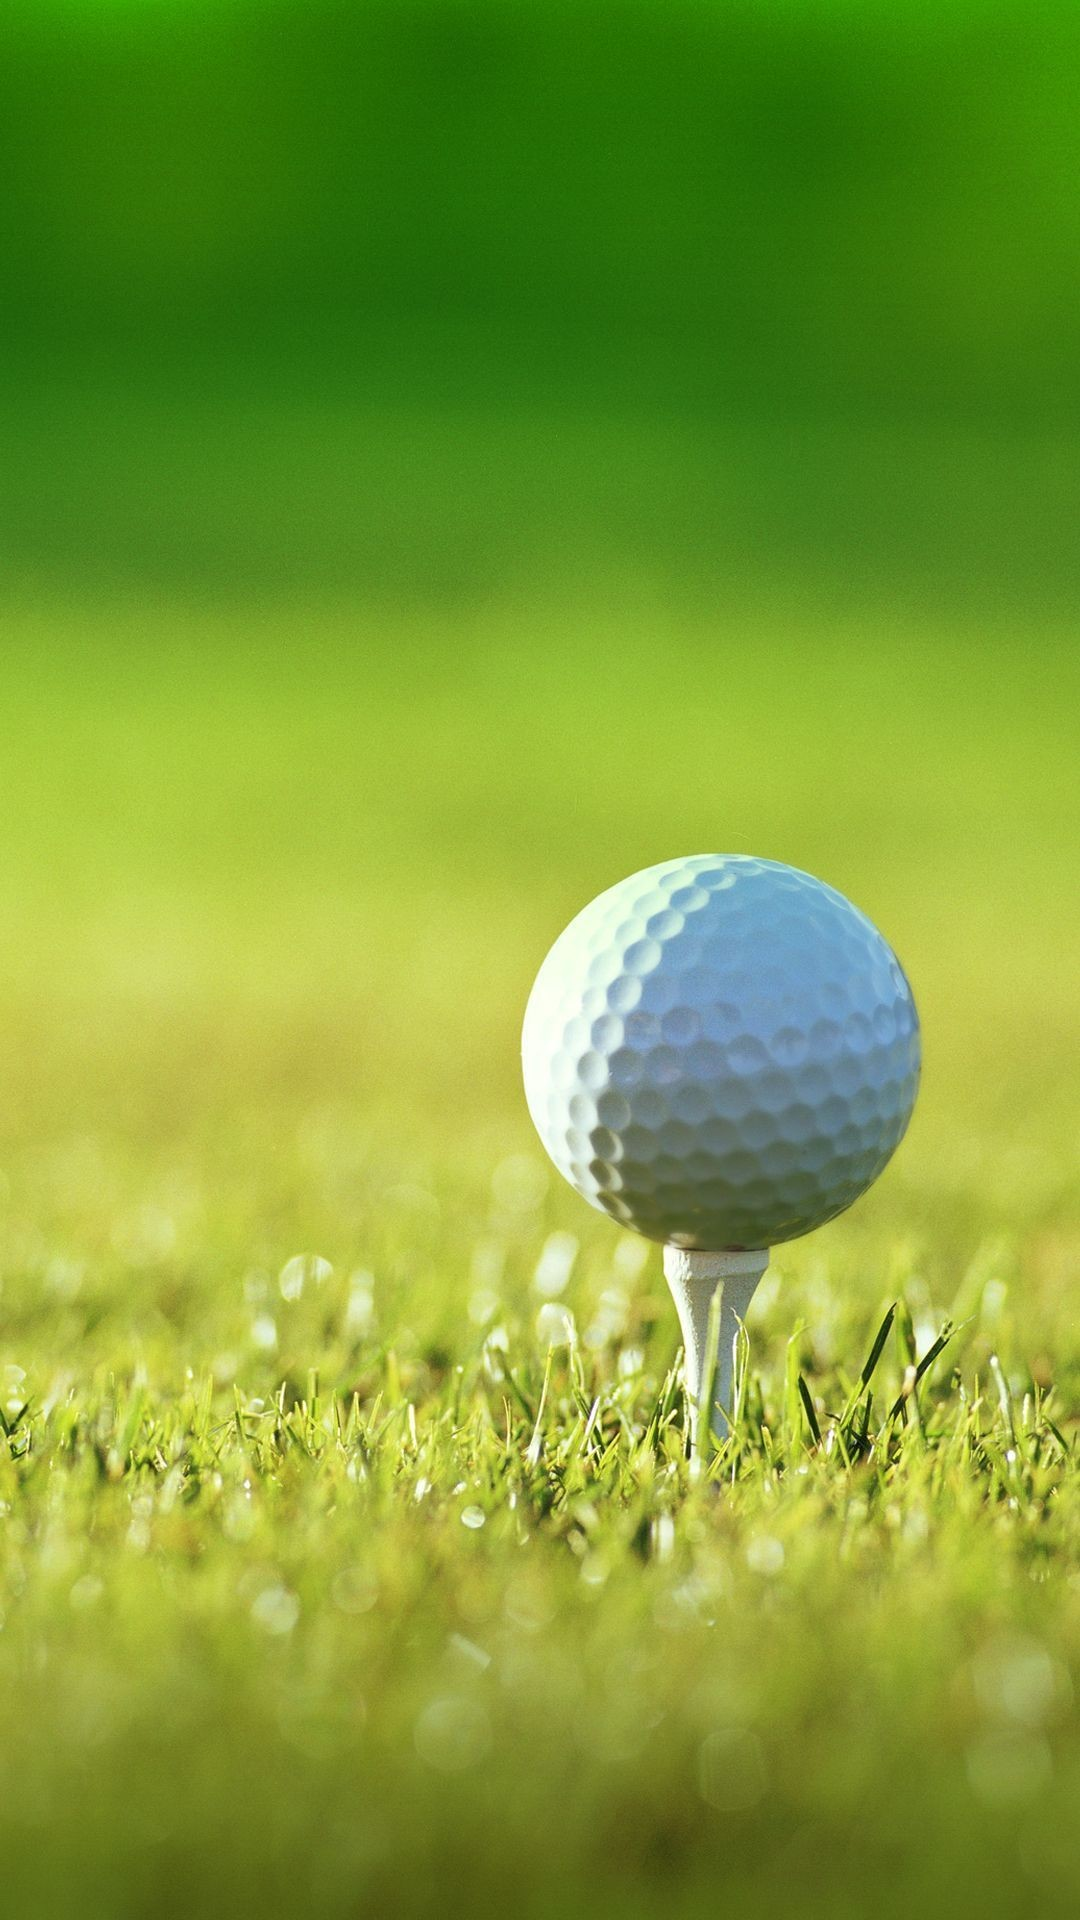 Res: 1080x1920, Gallery for - golf wallpaper pictures for lg